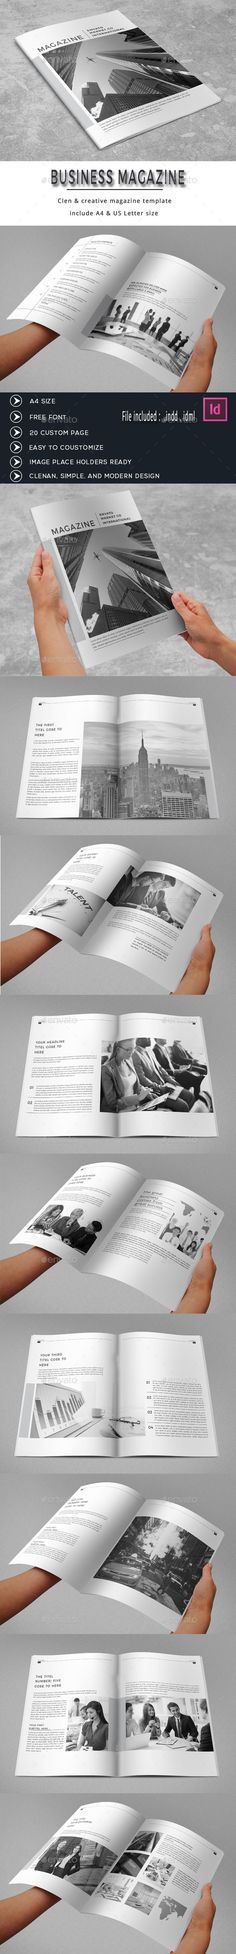 Minimal White Business Magazine by obayes  Brochure Description:Minimal Business Magazine Template that is super simple to edit and customize with your own details!Corporat